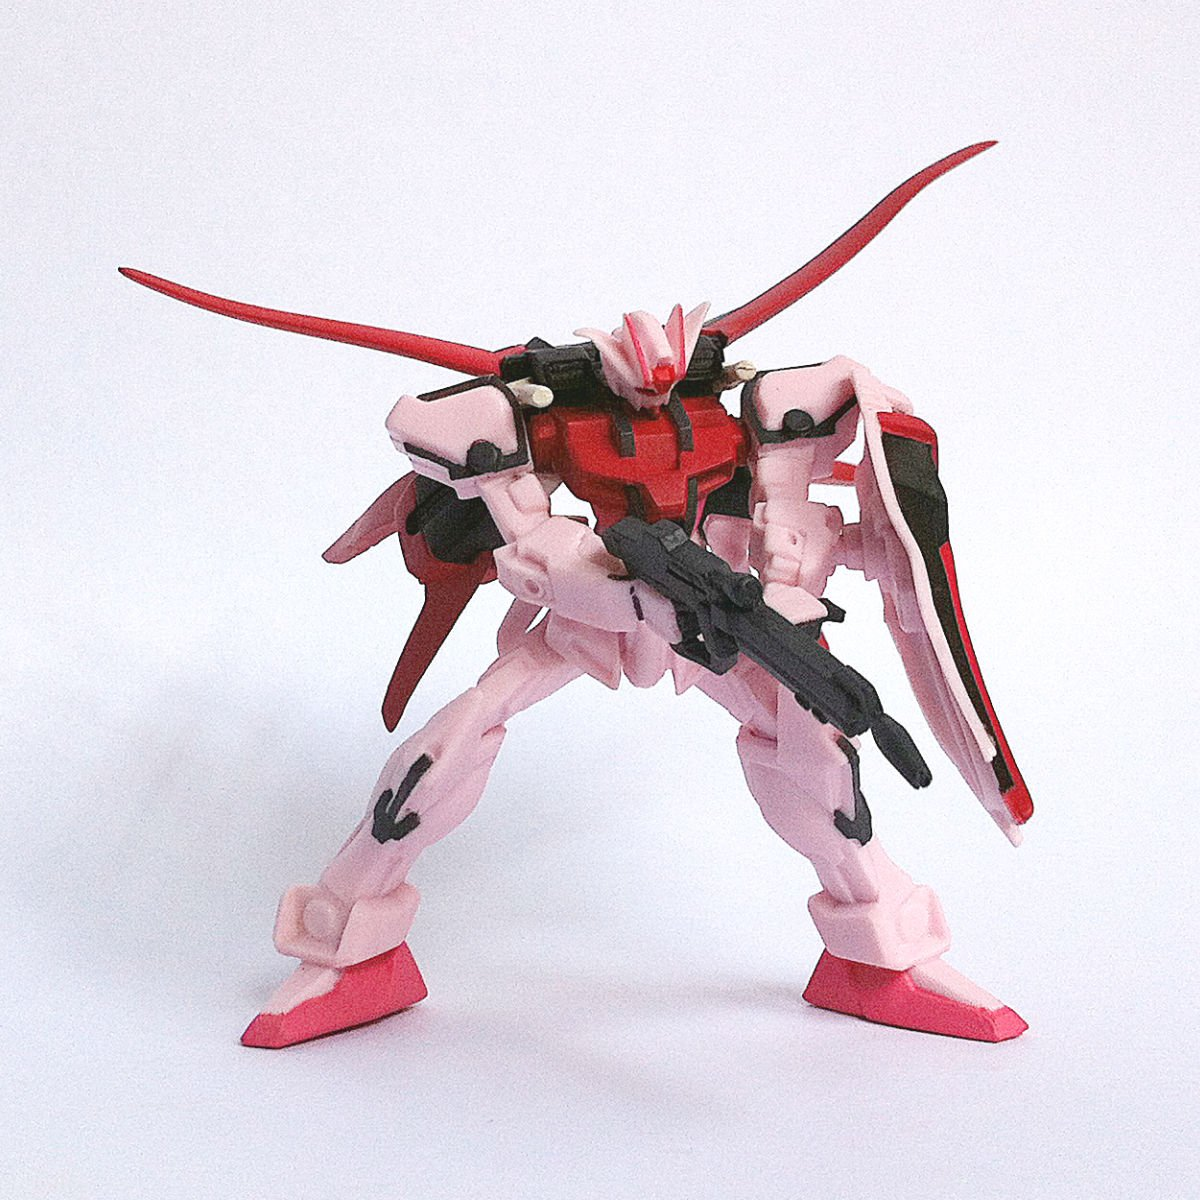 MBF-02+AQM/E-X01 Aile Strike Rouge from HG Gundam MS Selection by Bandai